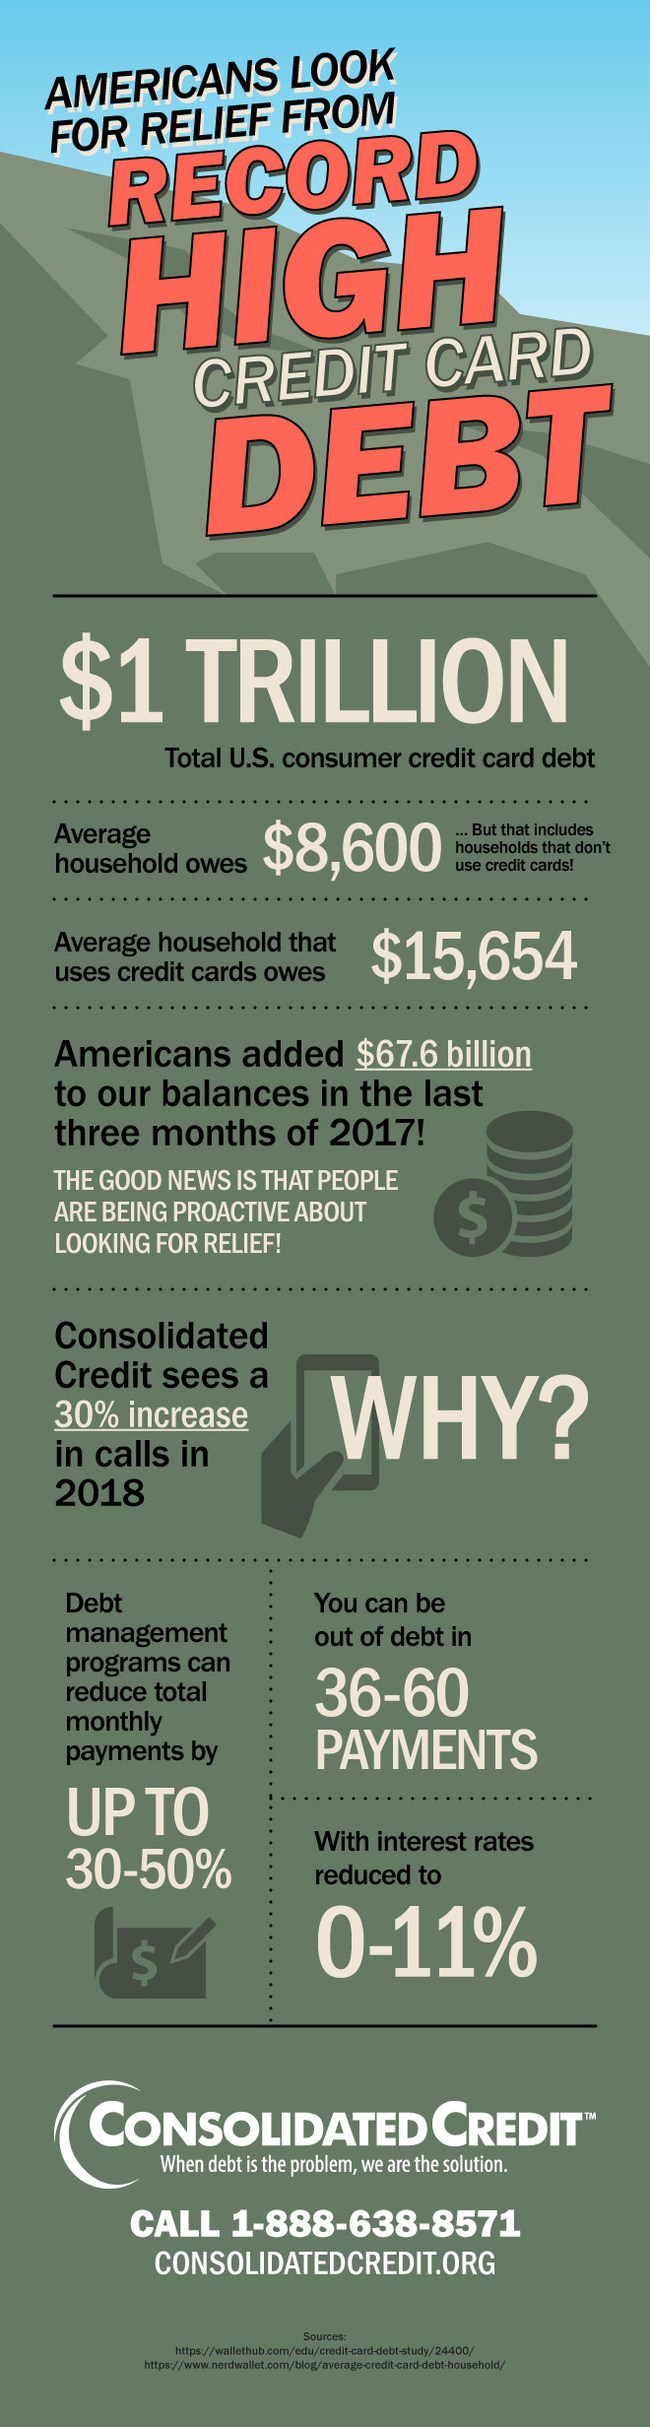 Total U.S. consumer credit card debt officially hit $1 trillion. With the average household owing approximately $8,600, Americans need debt relief to avoid credit score damage, financial hardship and bankruptcy.